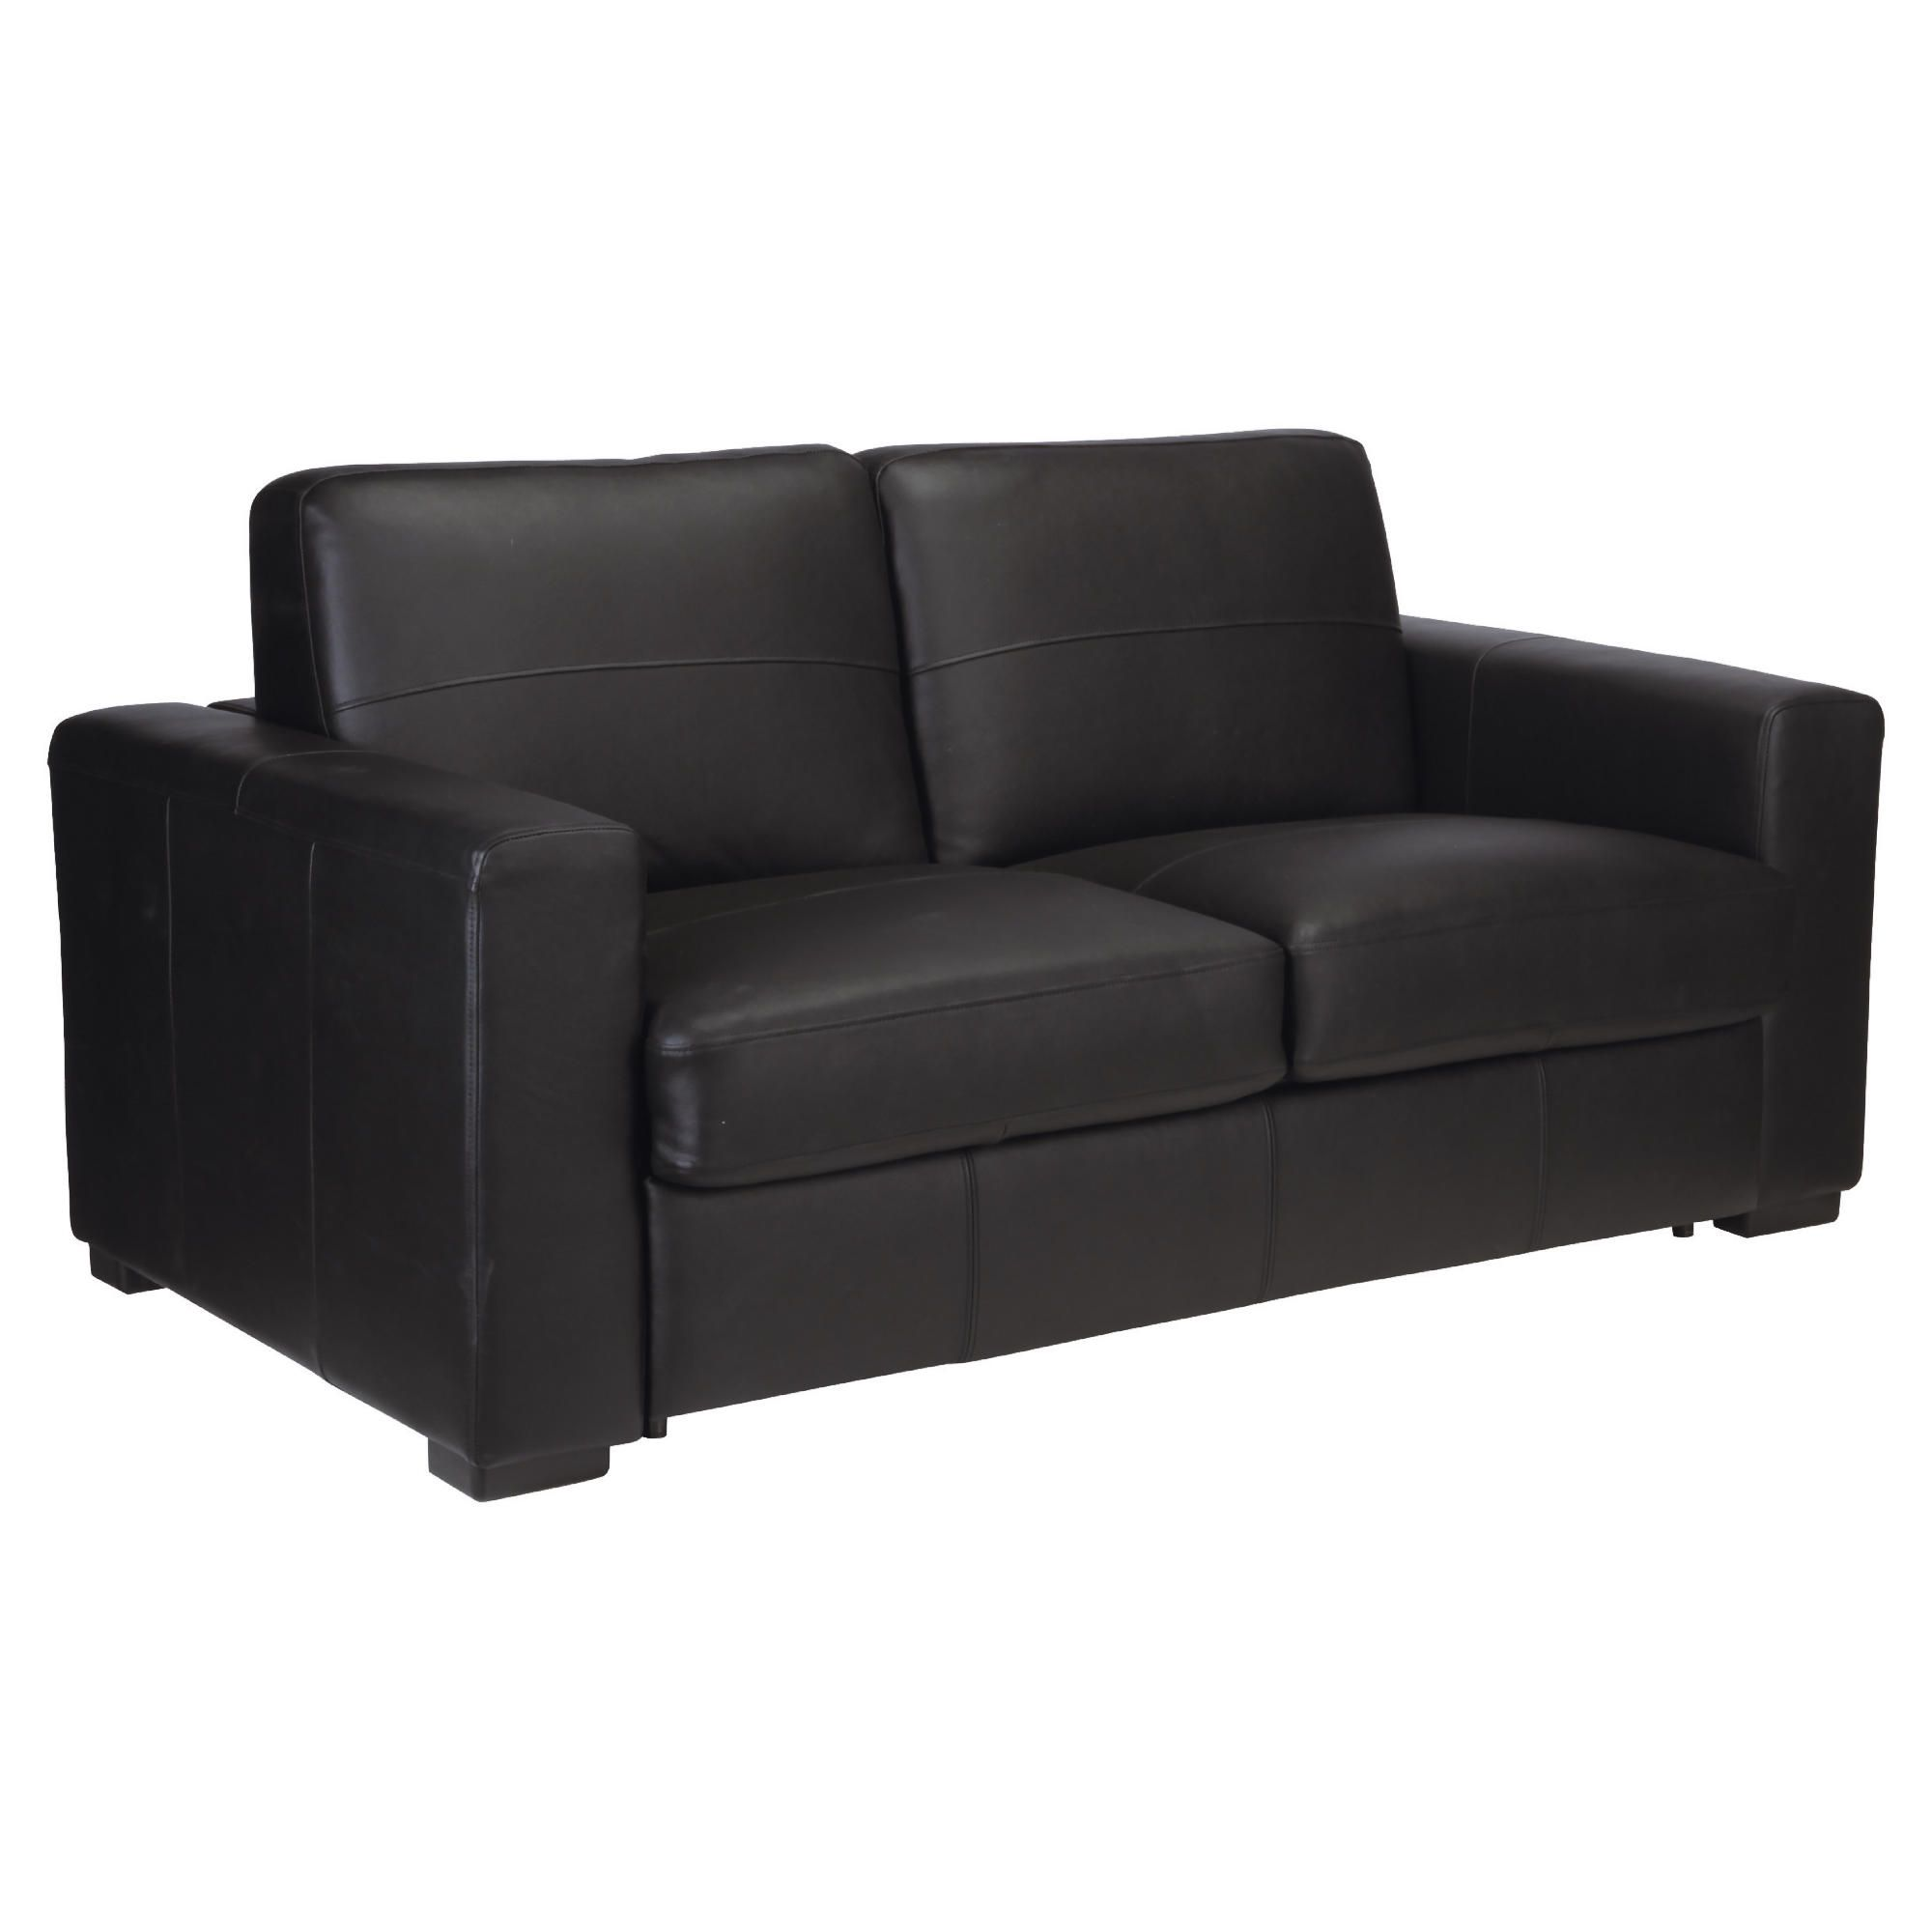 Venice Leather Sofa Bed Black at Tesco Direct